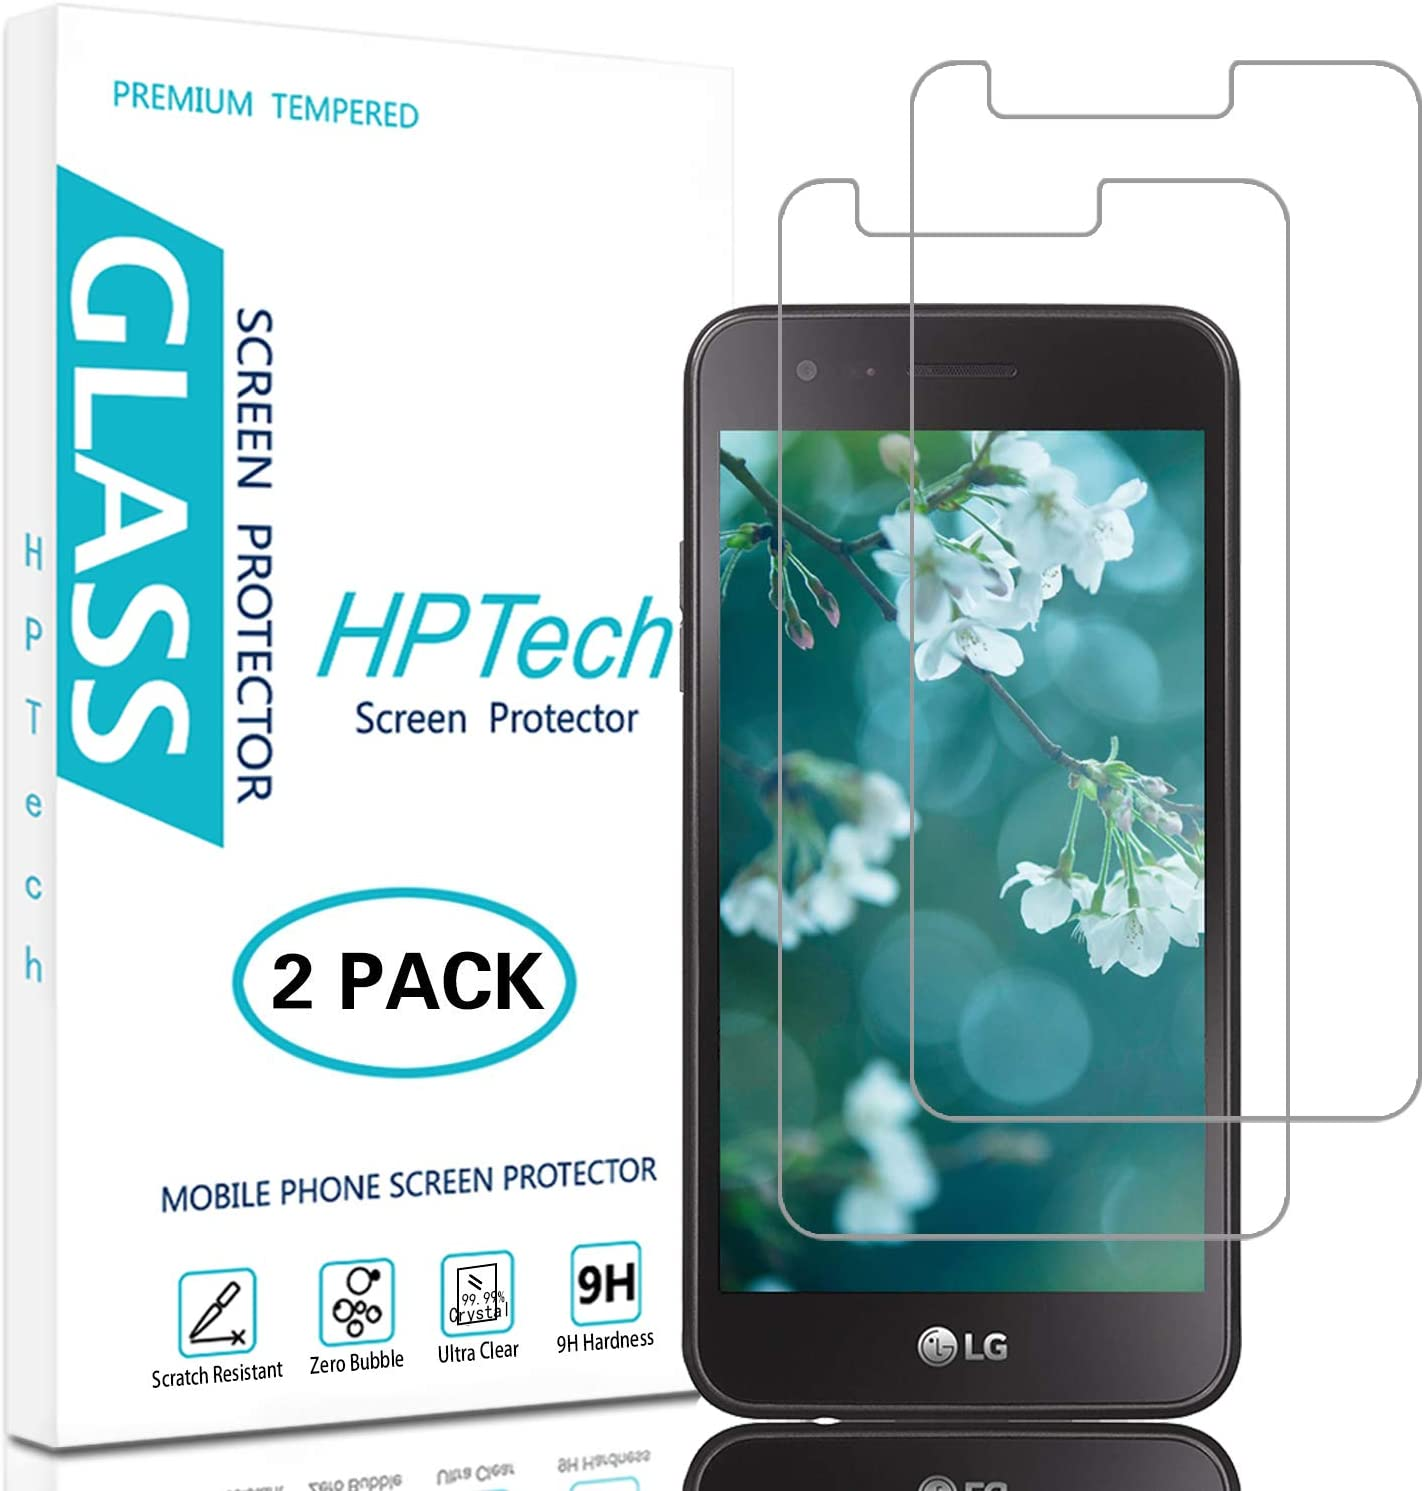 HPTech LG Rebel 3 LTE Screen Protector - (2-Pack) Tempered Glass Film for LG Rebel 3 LTE Screen Protector Easy to Install, Bubble Free with Lifetime Replacement Warranty